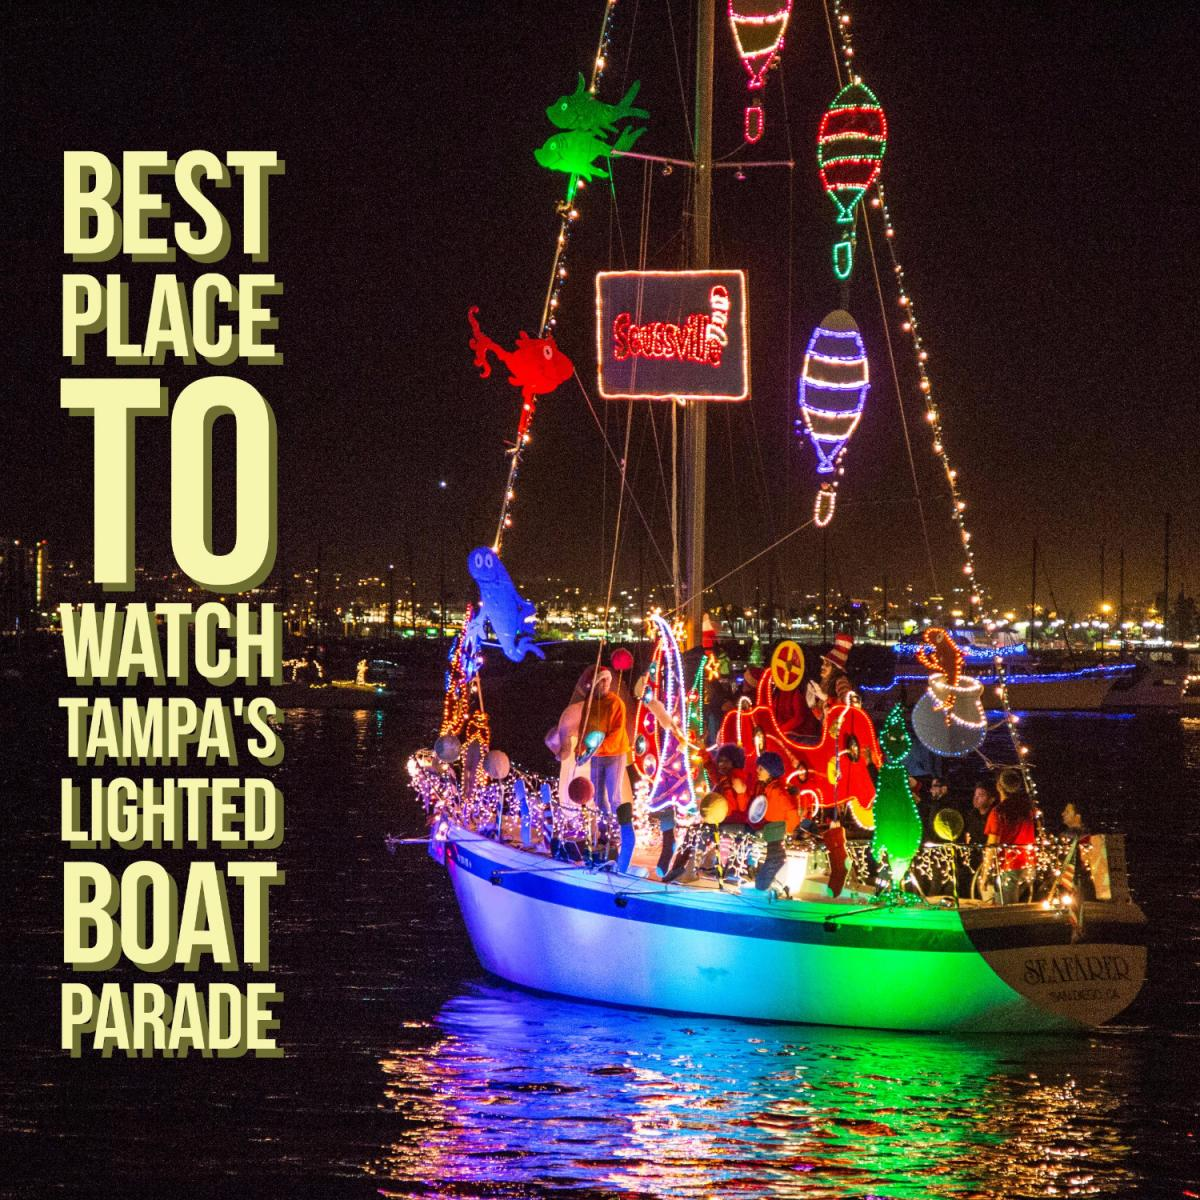 Best Place to Watch Tampa's Lighted Boat Parade